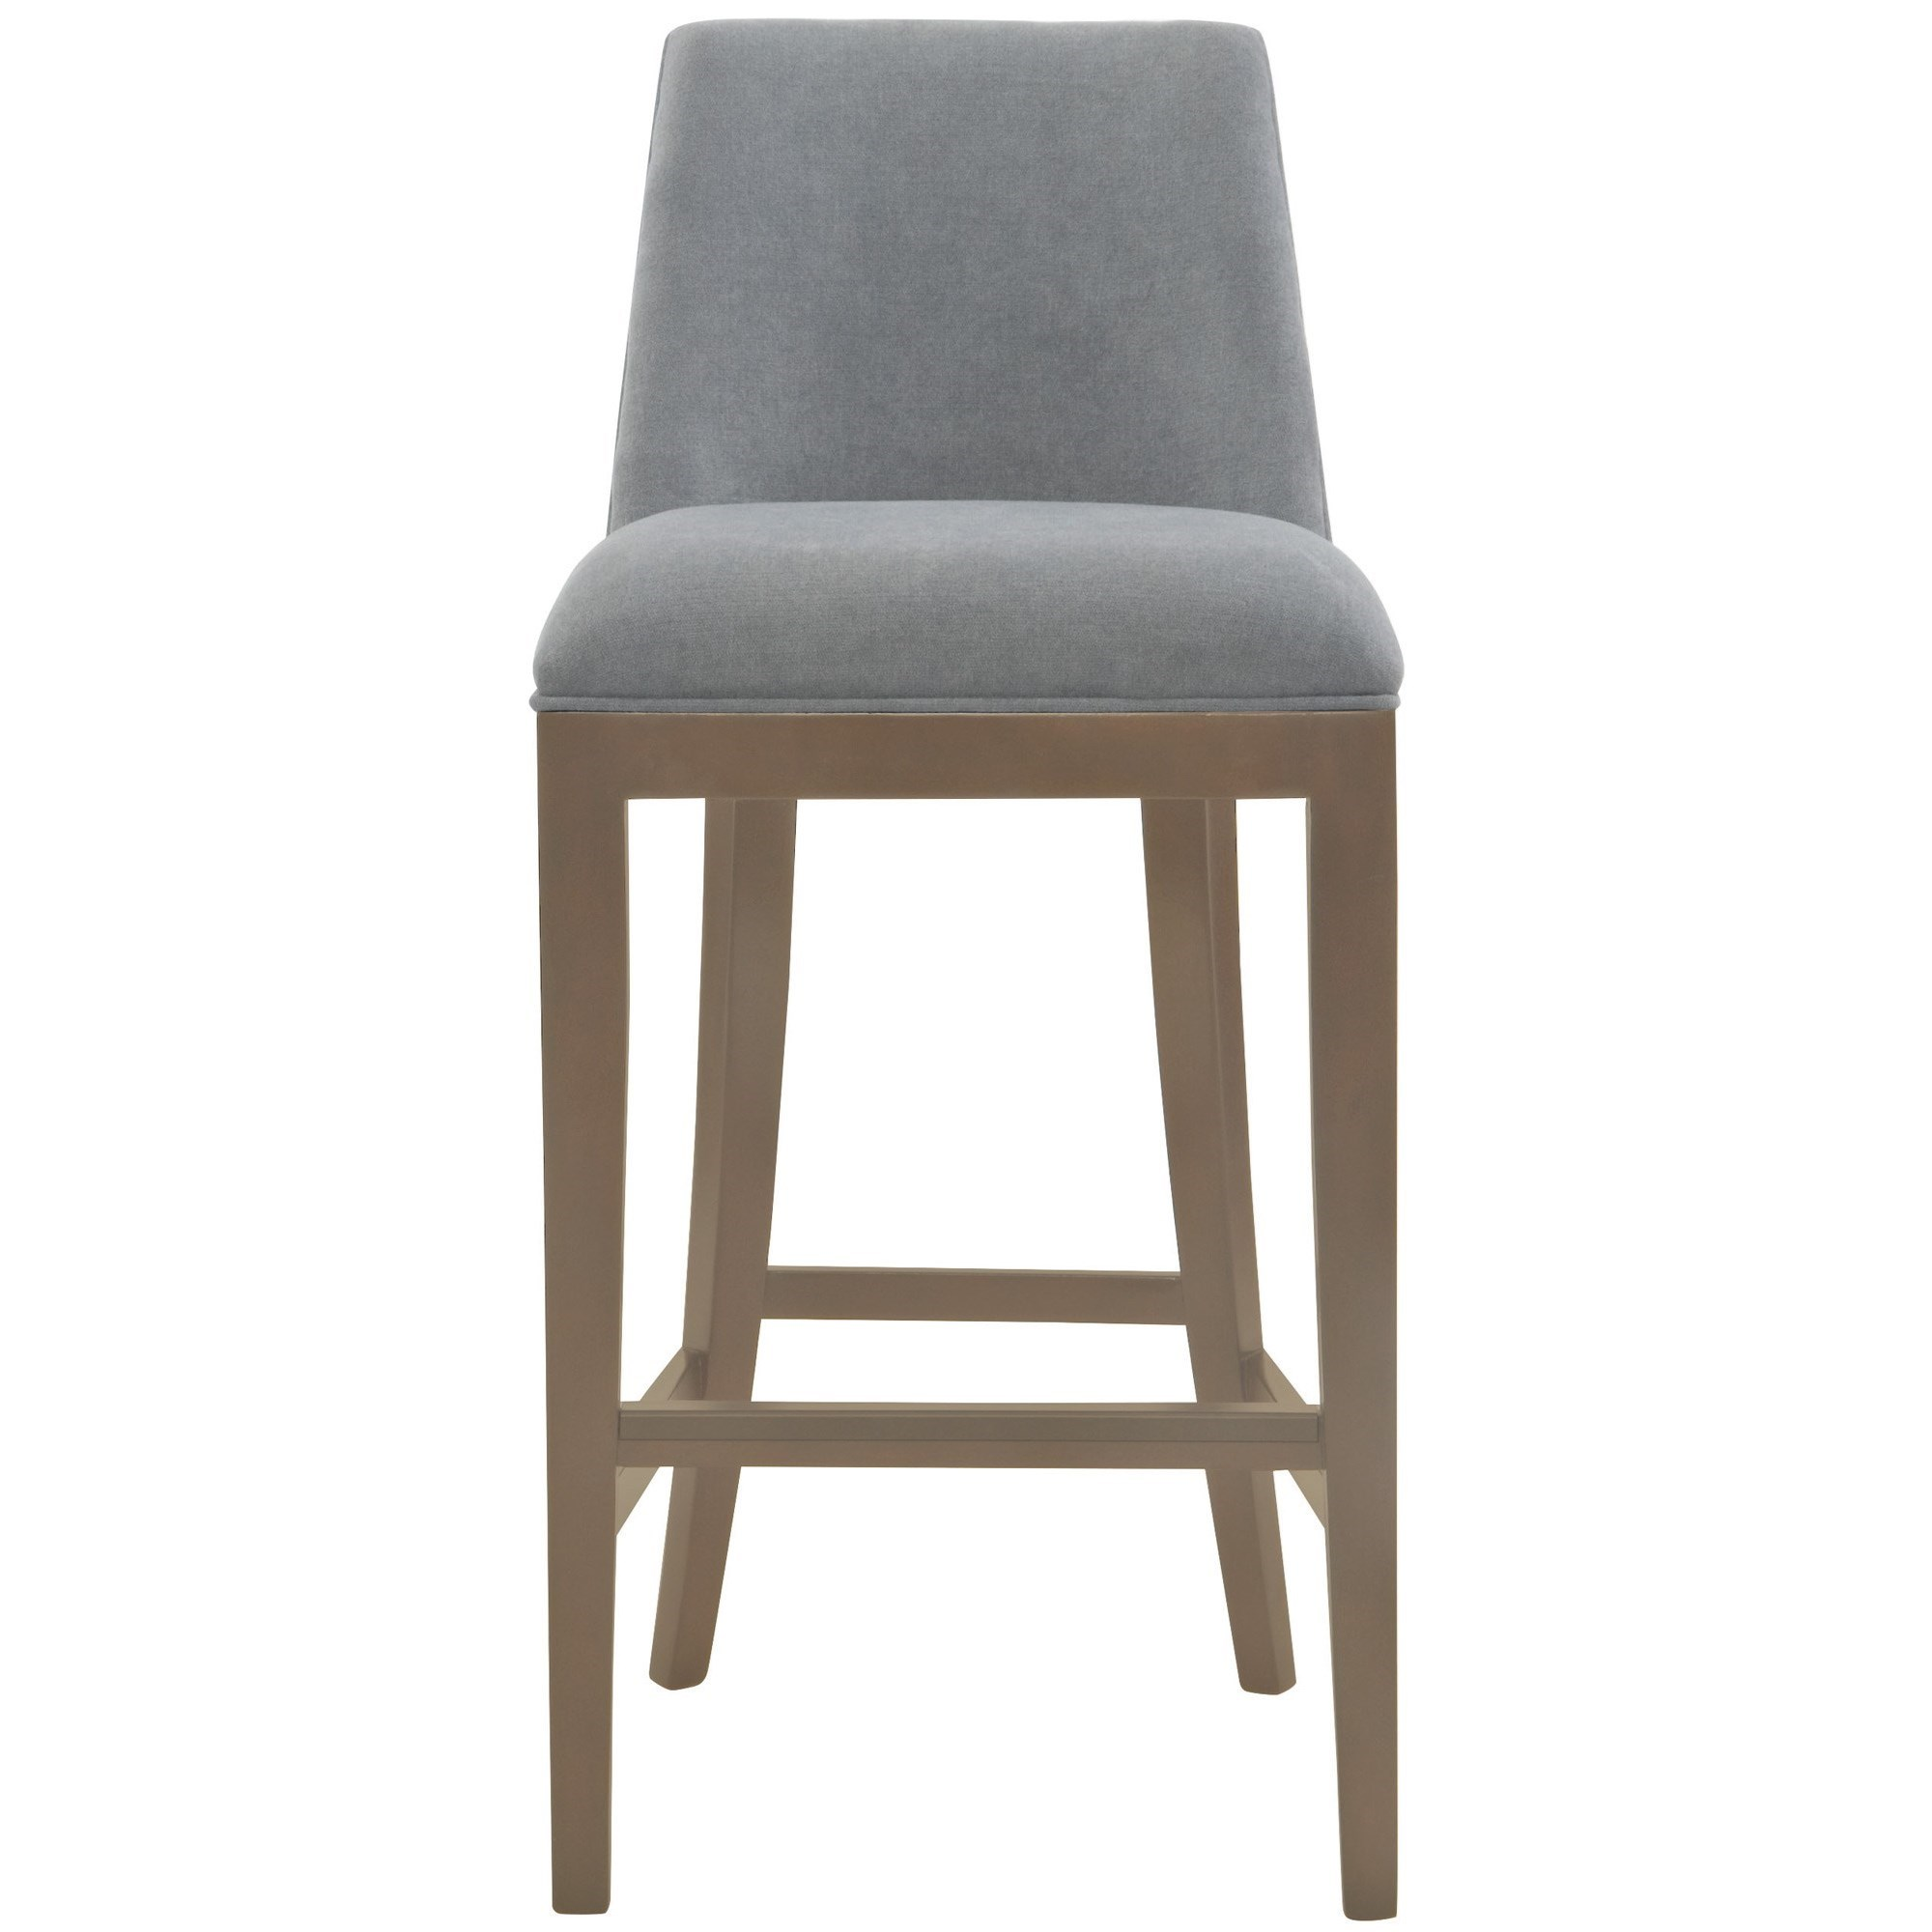 Interiors - Bailey Bar Stool by Bernhardt at Fisher Home Furnishings